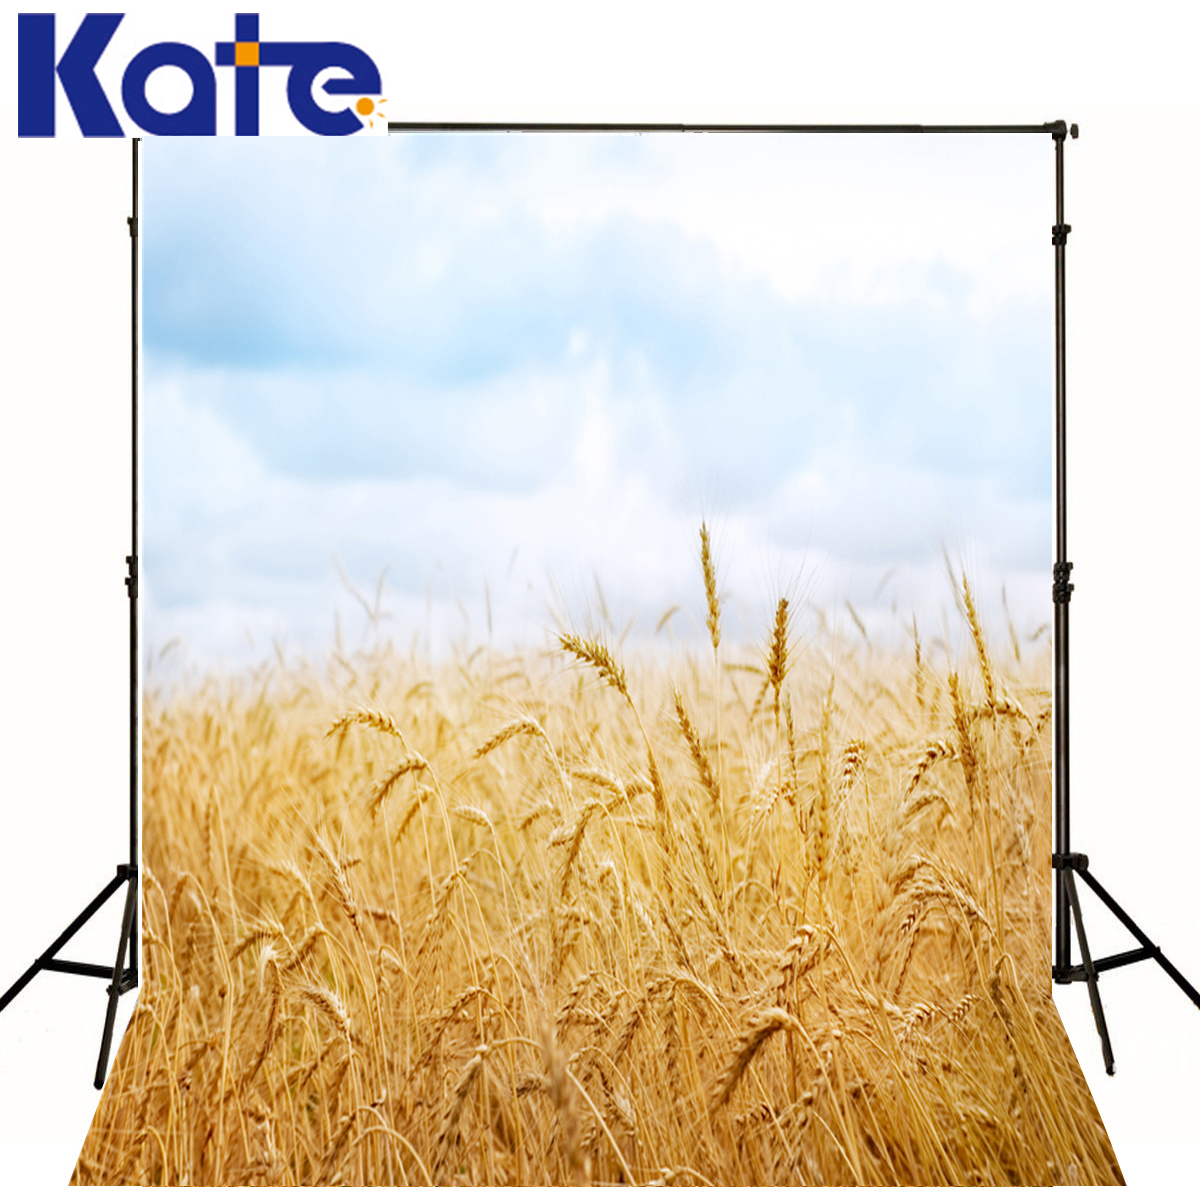 KATE Photo Background Mature Wheat Baby Studio White Clouds Photo Backdrops Background Newborn Backgrounds for Photo Studio<br>